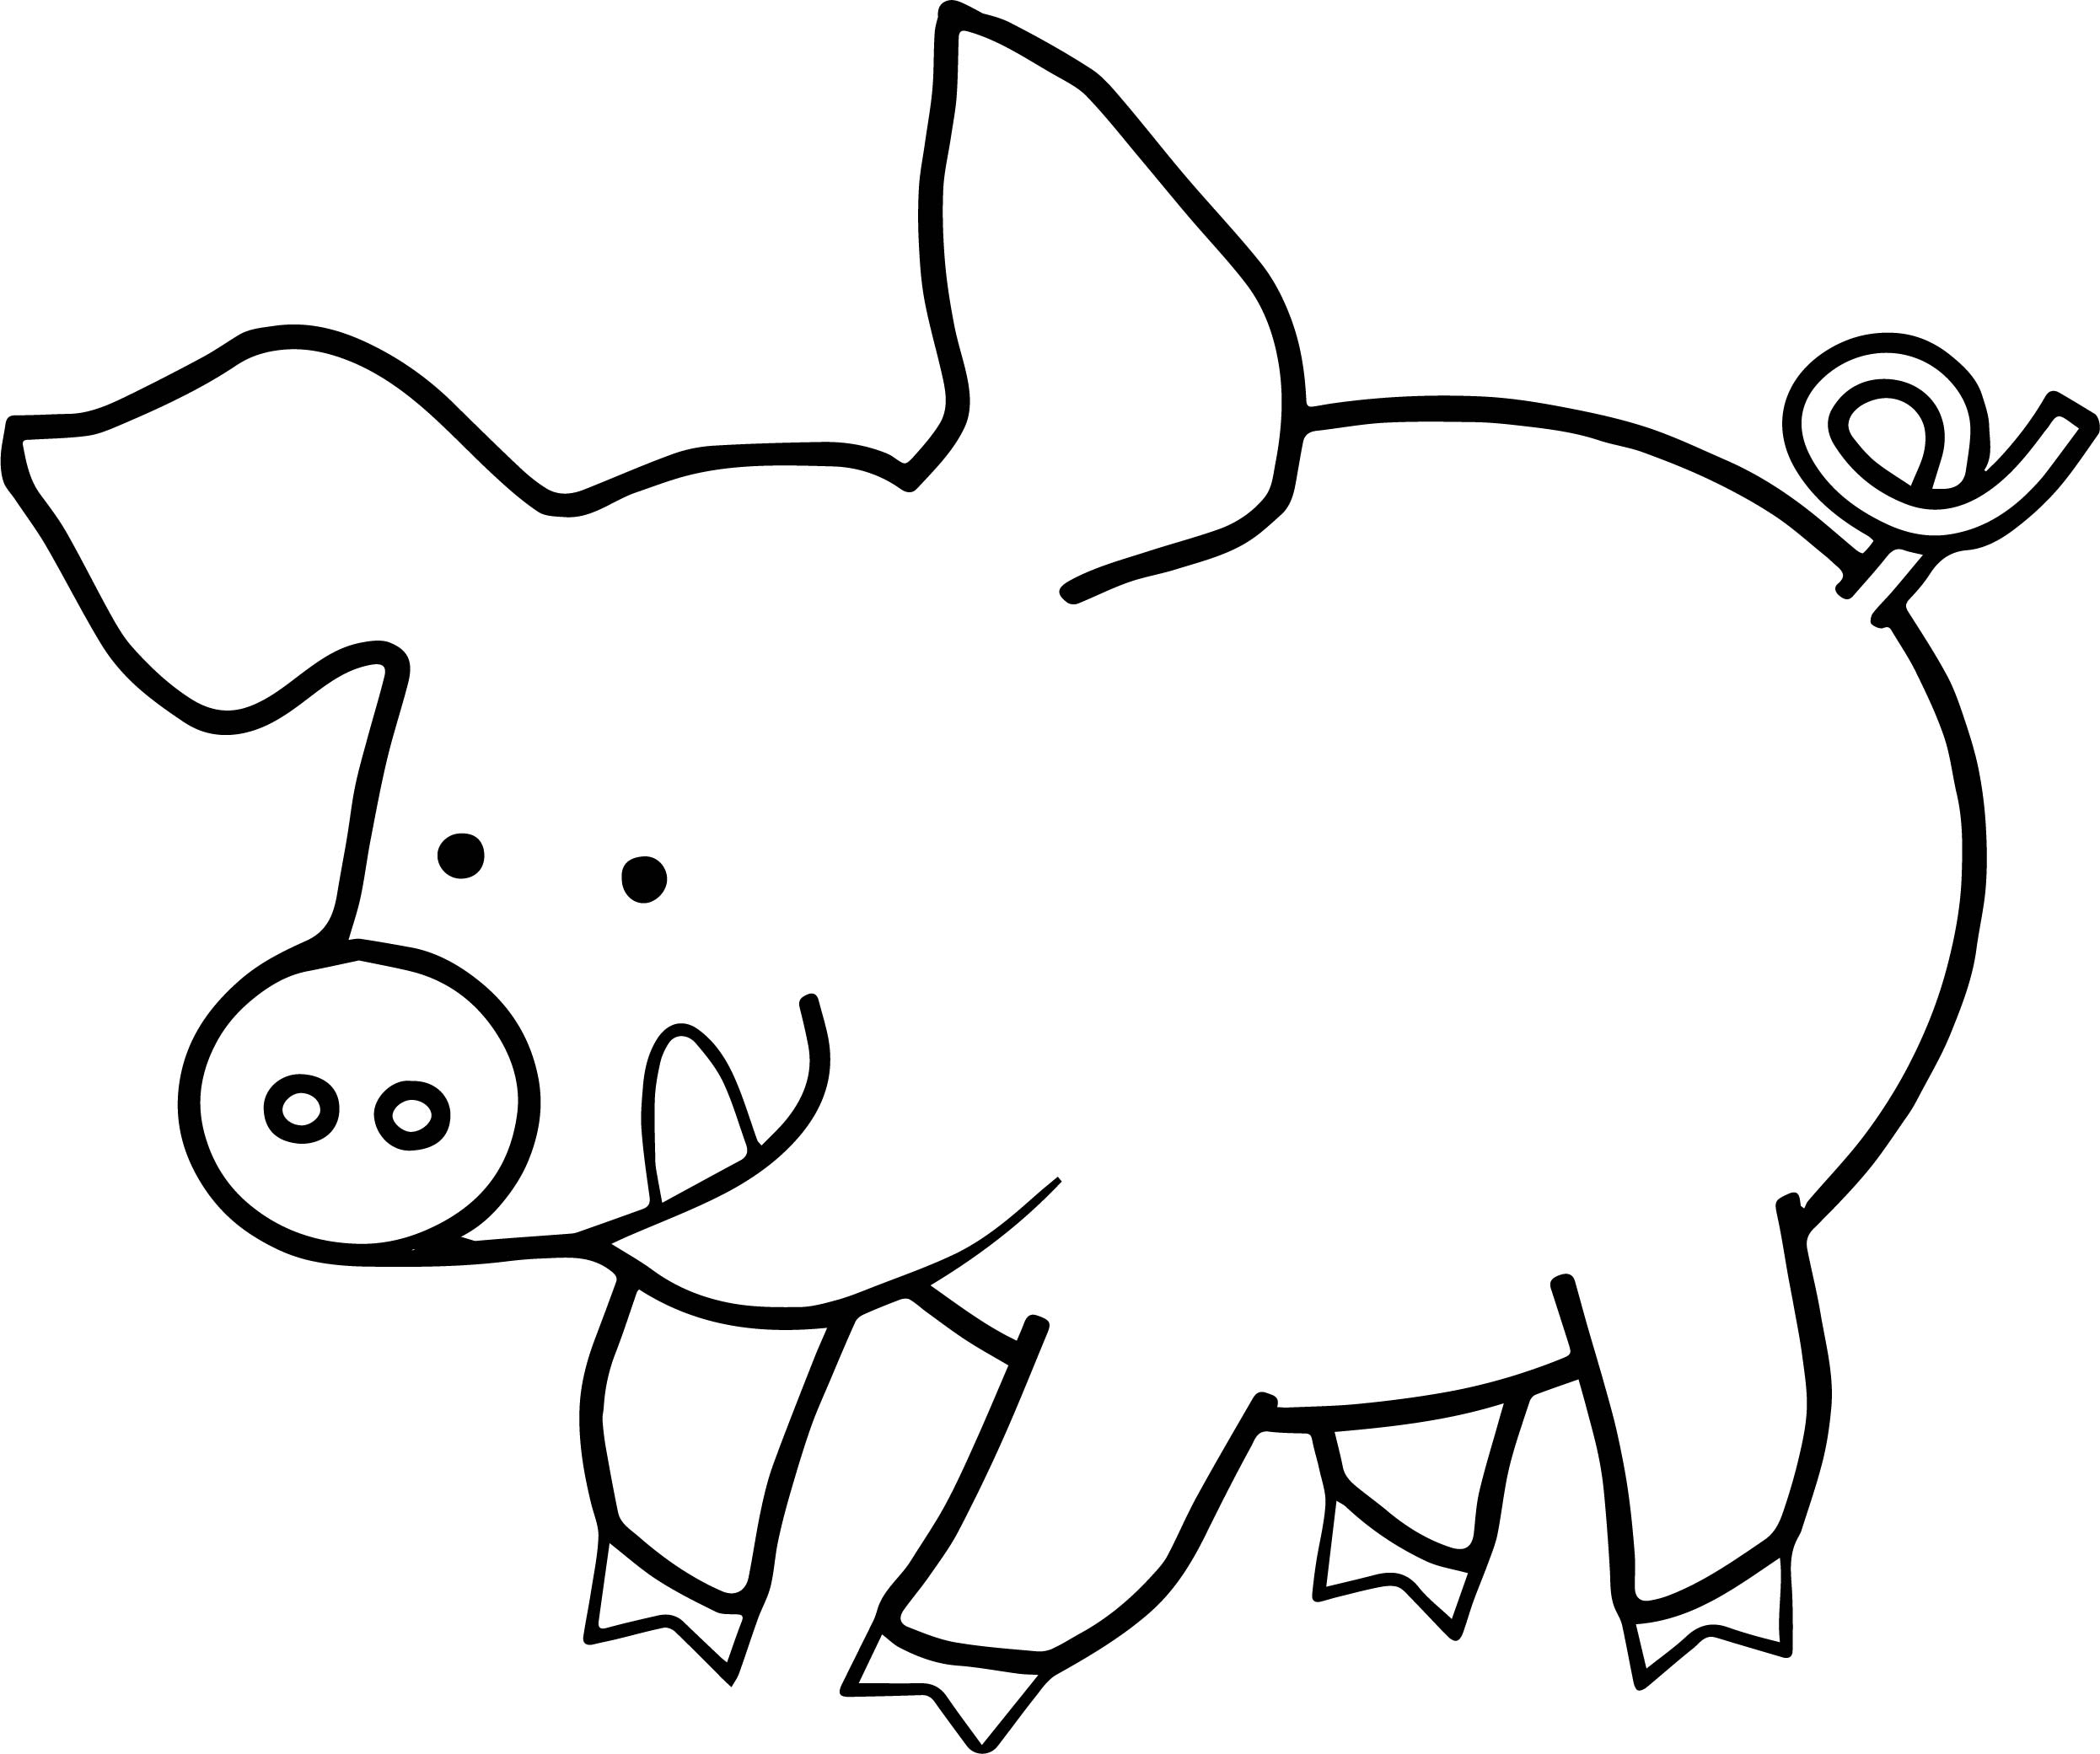 coloring pig pictures free printable pig coloring pages for kids pig coloring pictures